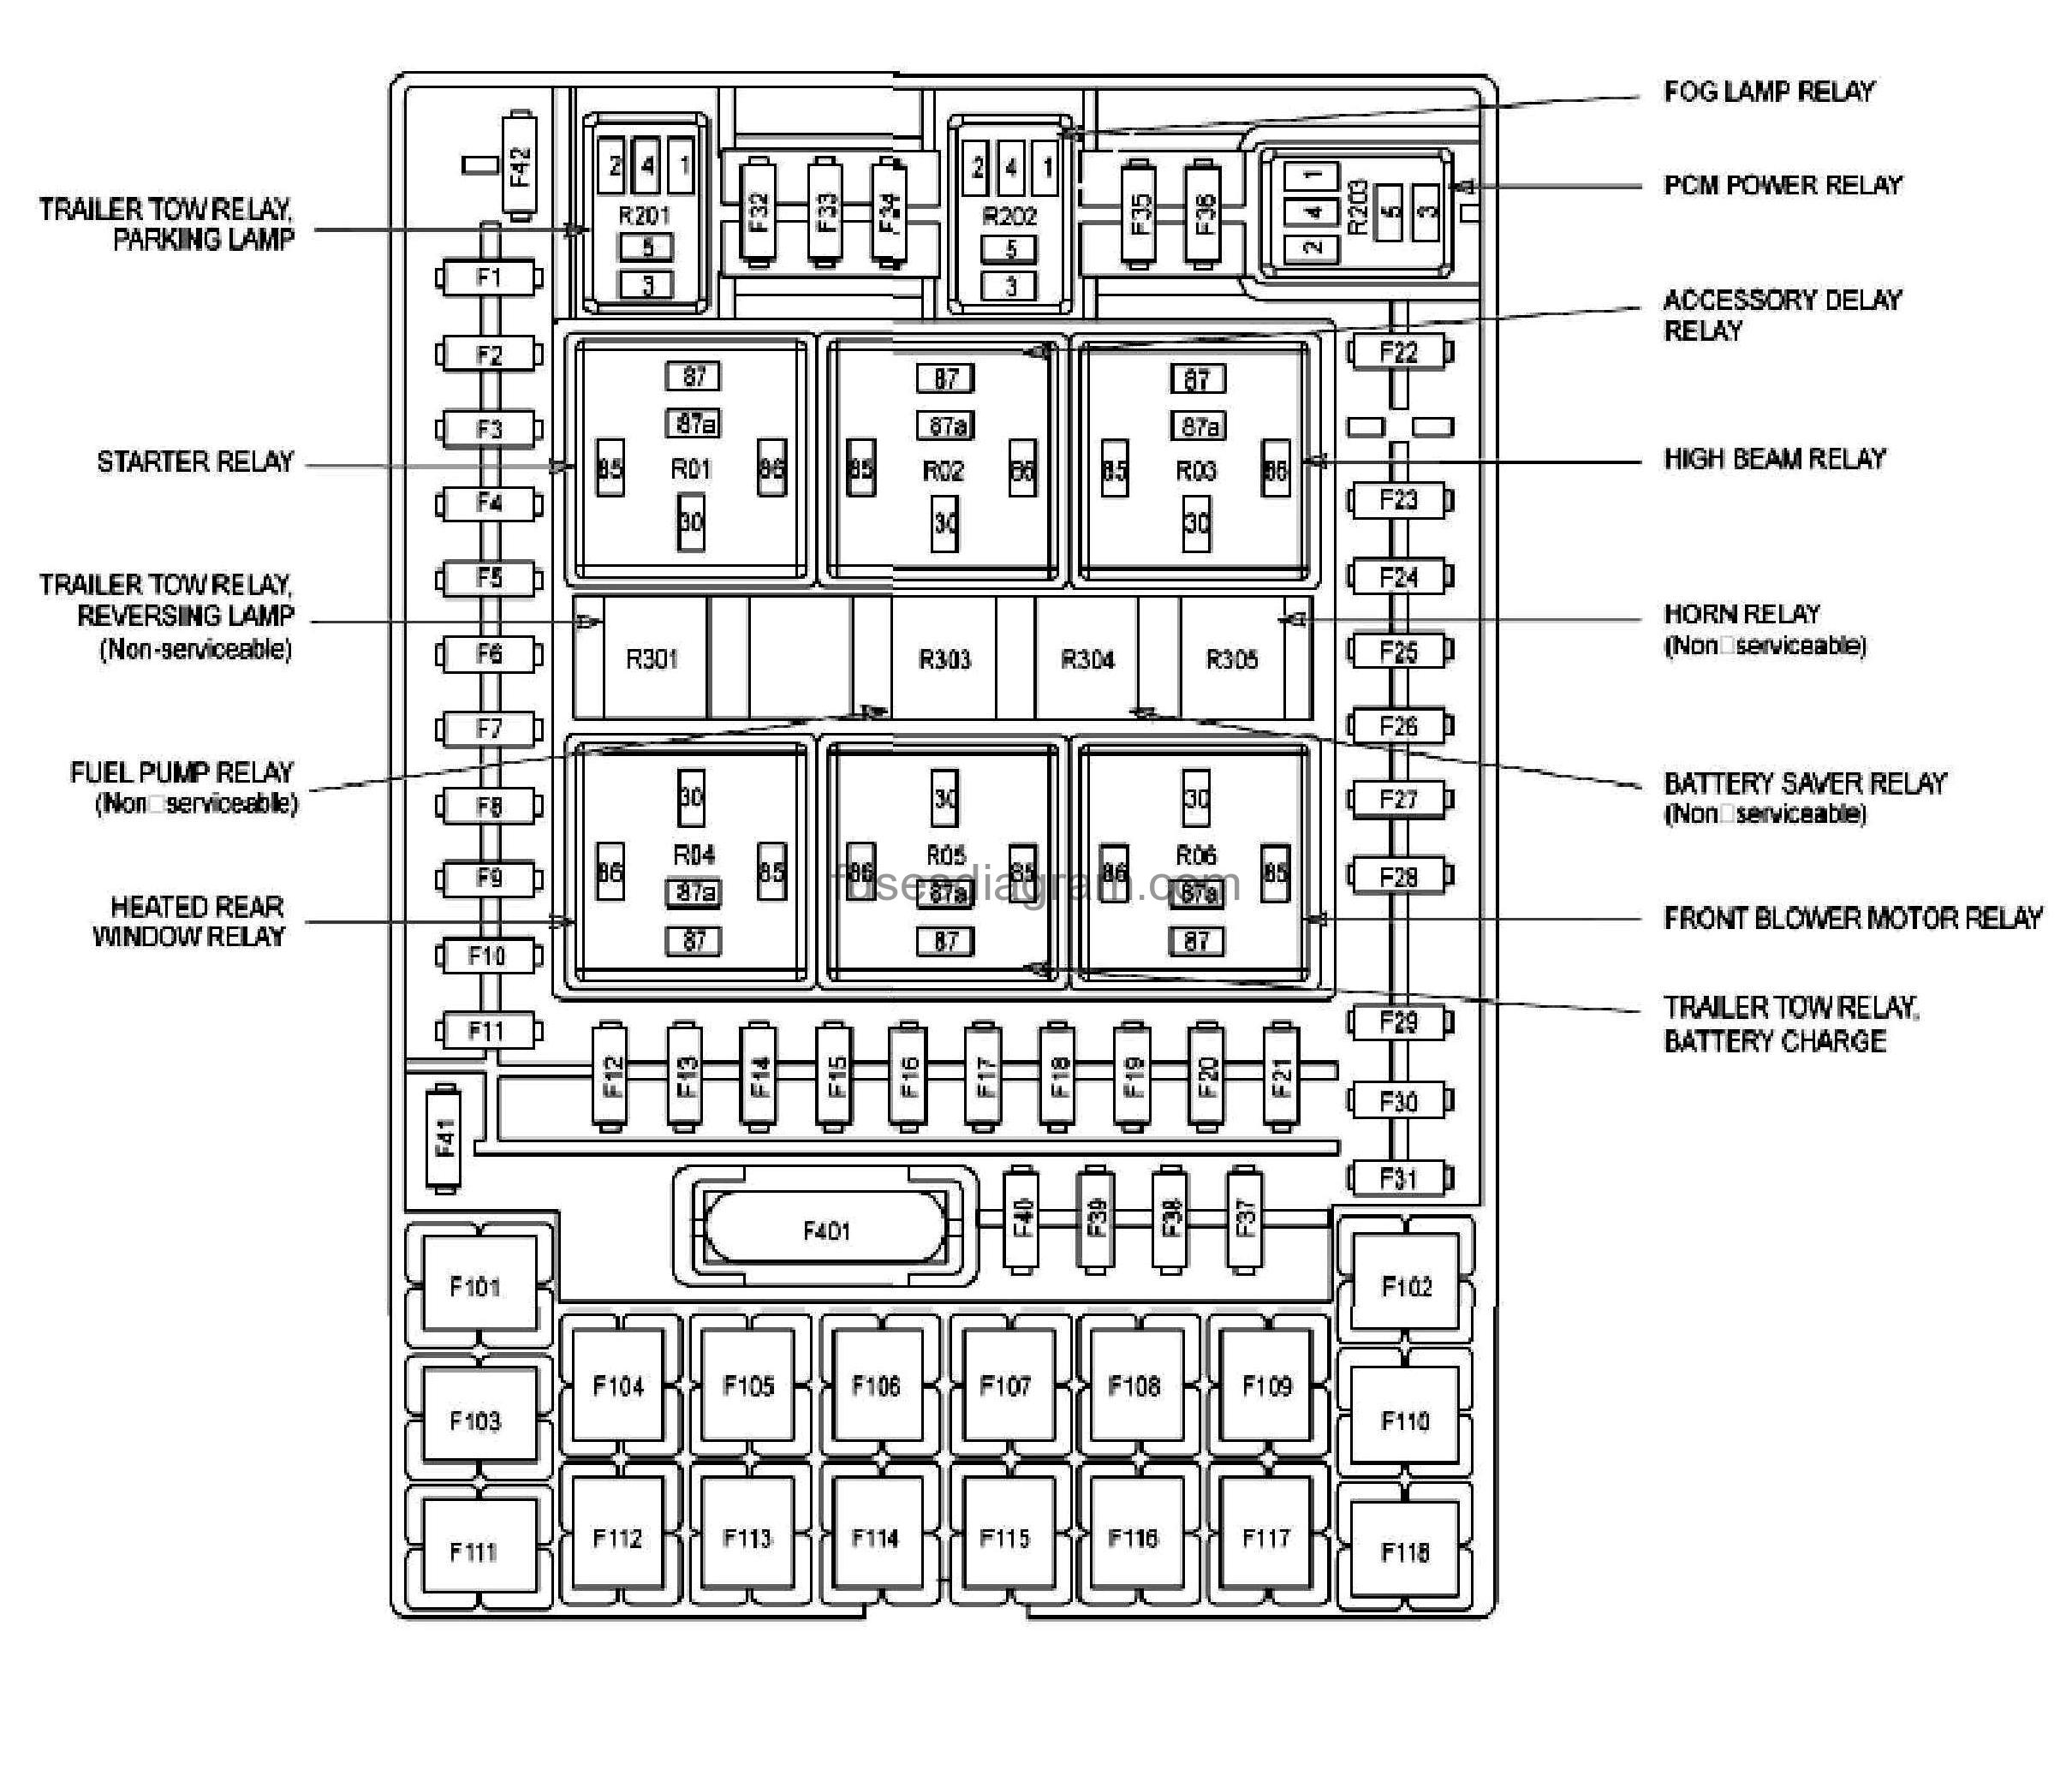 Fuse box Ford F150 2004-2008 | Ford F150 Fuse Panel Diagram |  | Fuses box diagram